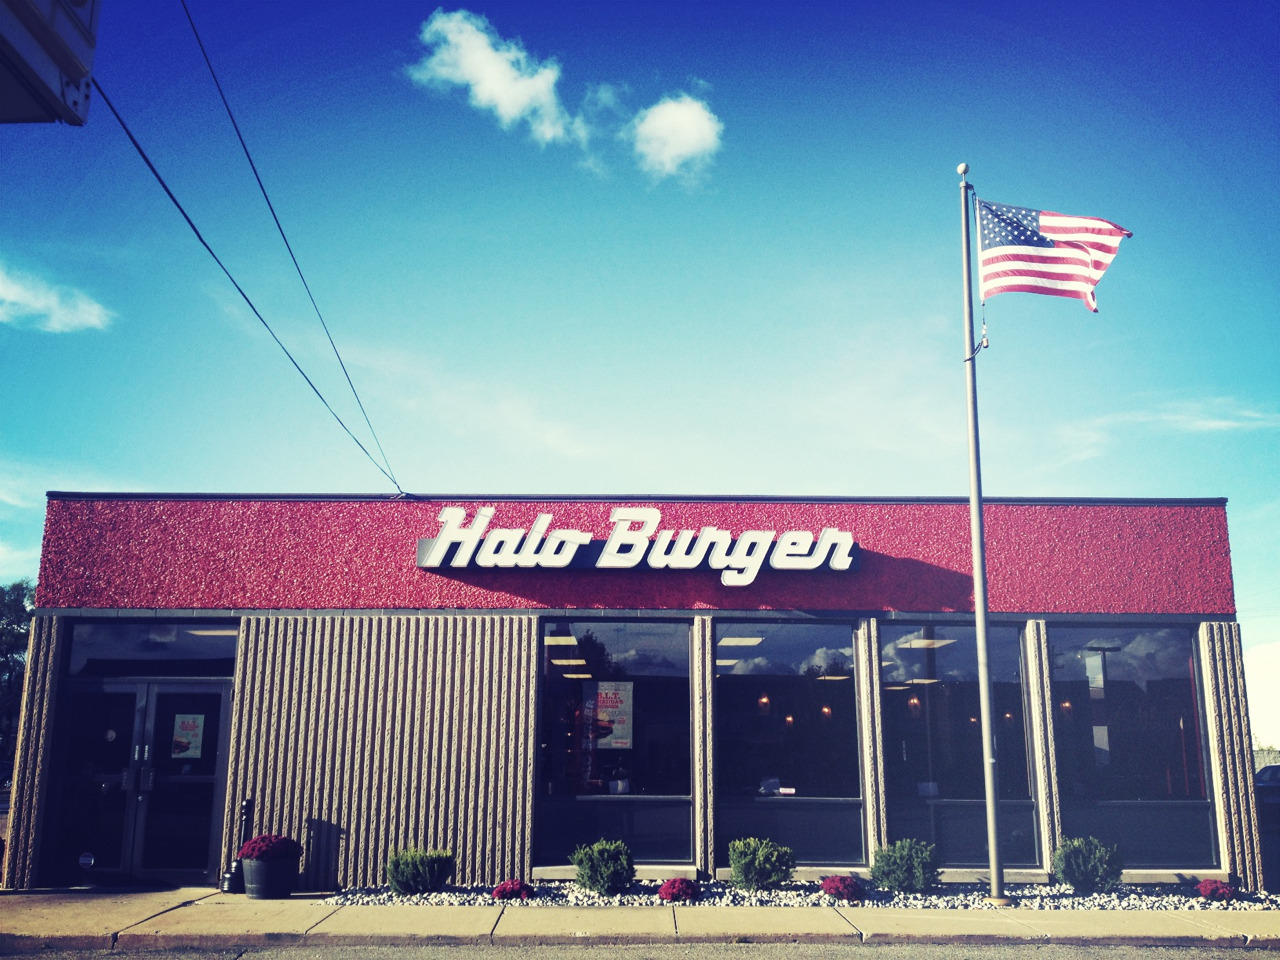 Trying Halo Burger in Flint, Michigan. It looks like its in an old bank.